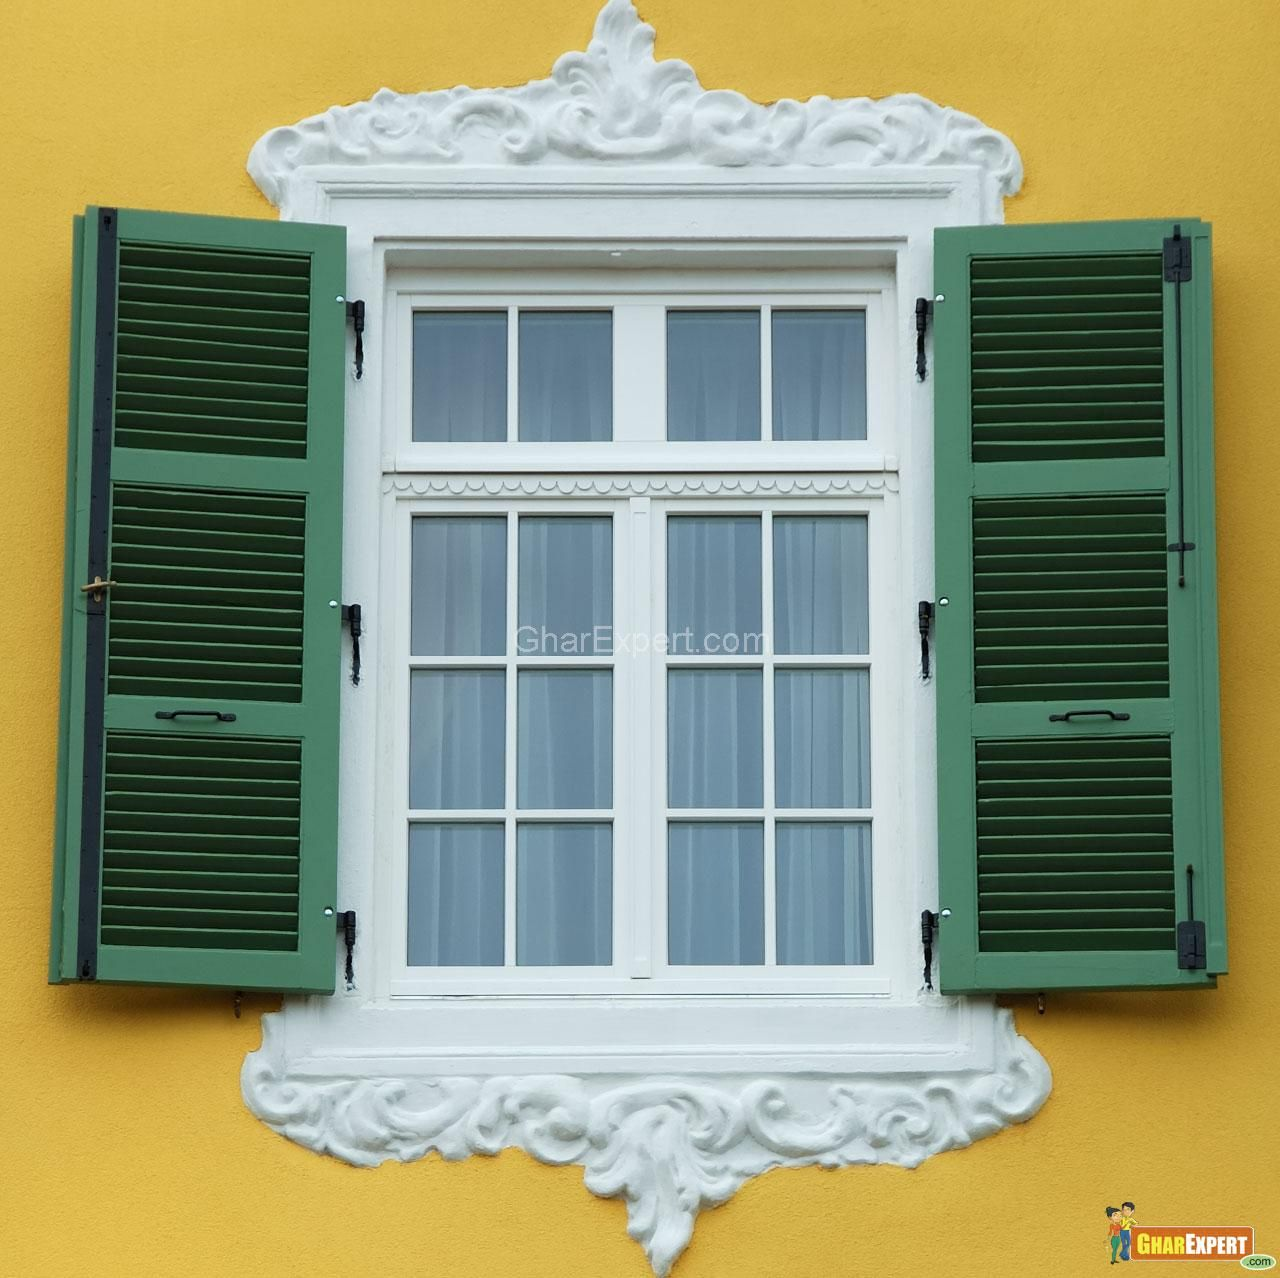 Amazing Front Window Design Of House Part - 5: Window Designs Pictures | Window Design